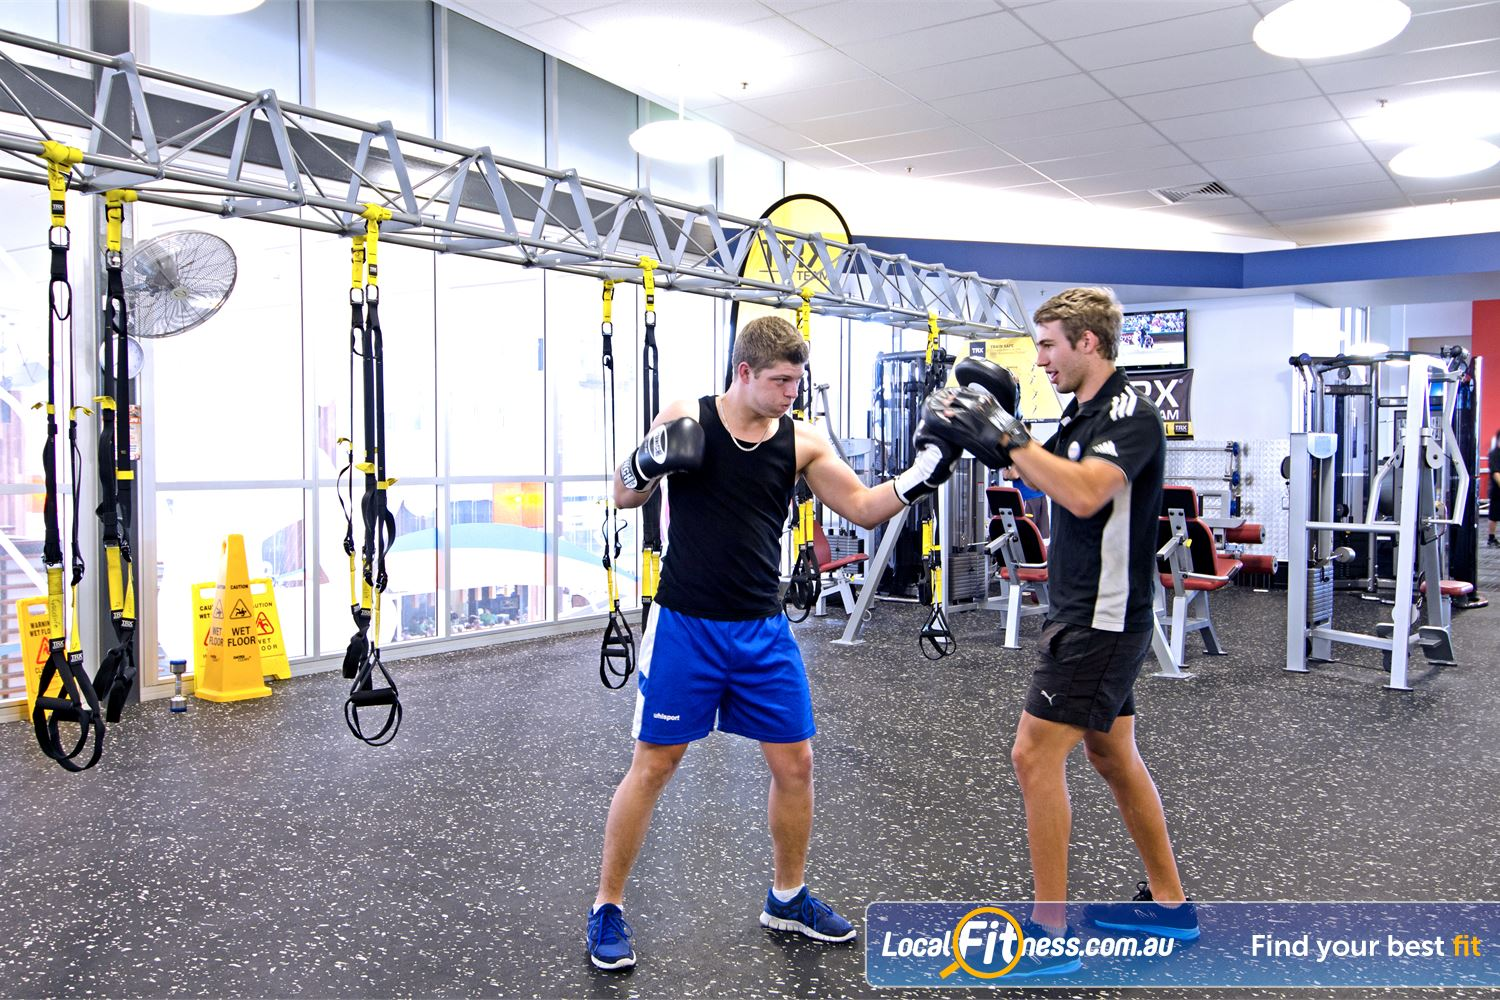 Goodlife Health Clubs Chermside Our Chermside HIIT functional training zone is fully equipped.